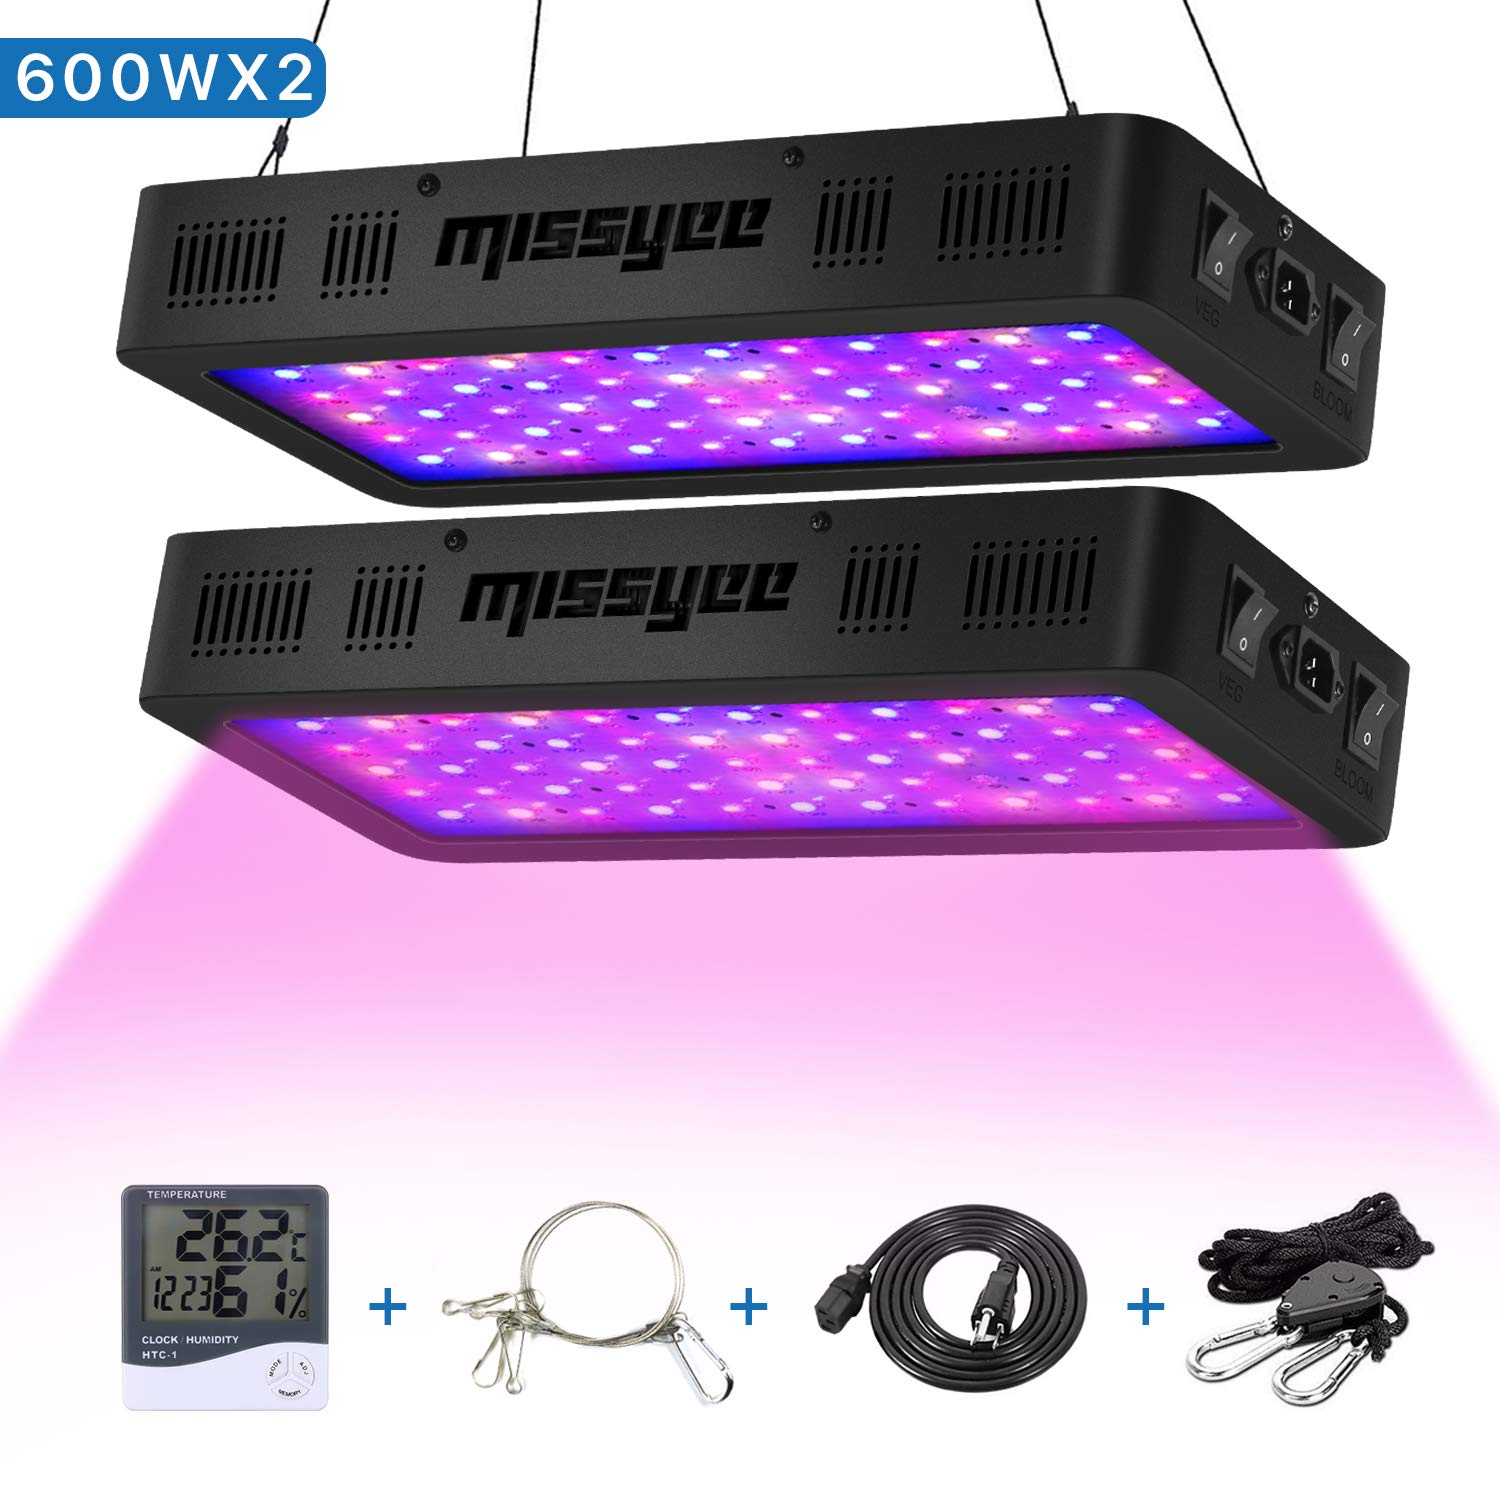 Plant Grow Light, Missyee 600W 2-Pack Full Spectrum LED Grow Light for Indoor Plant, Thermometer Humidity Monitor Adjustable Rope Double Switch Grow Lamps by Missyee